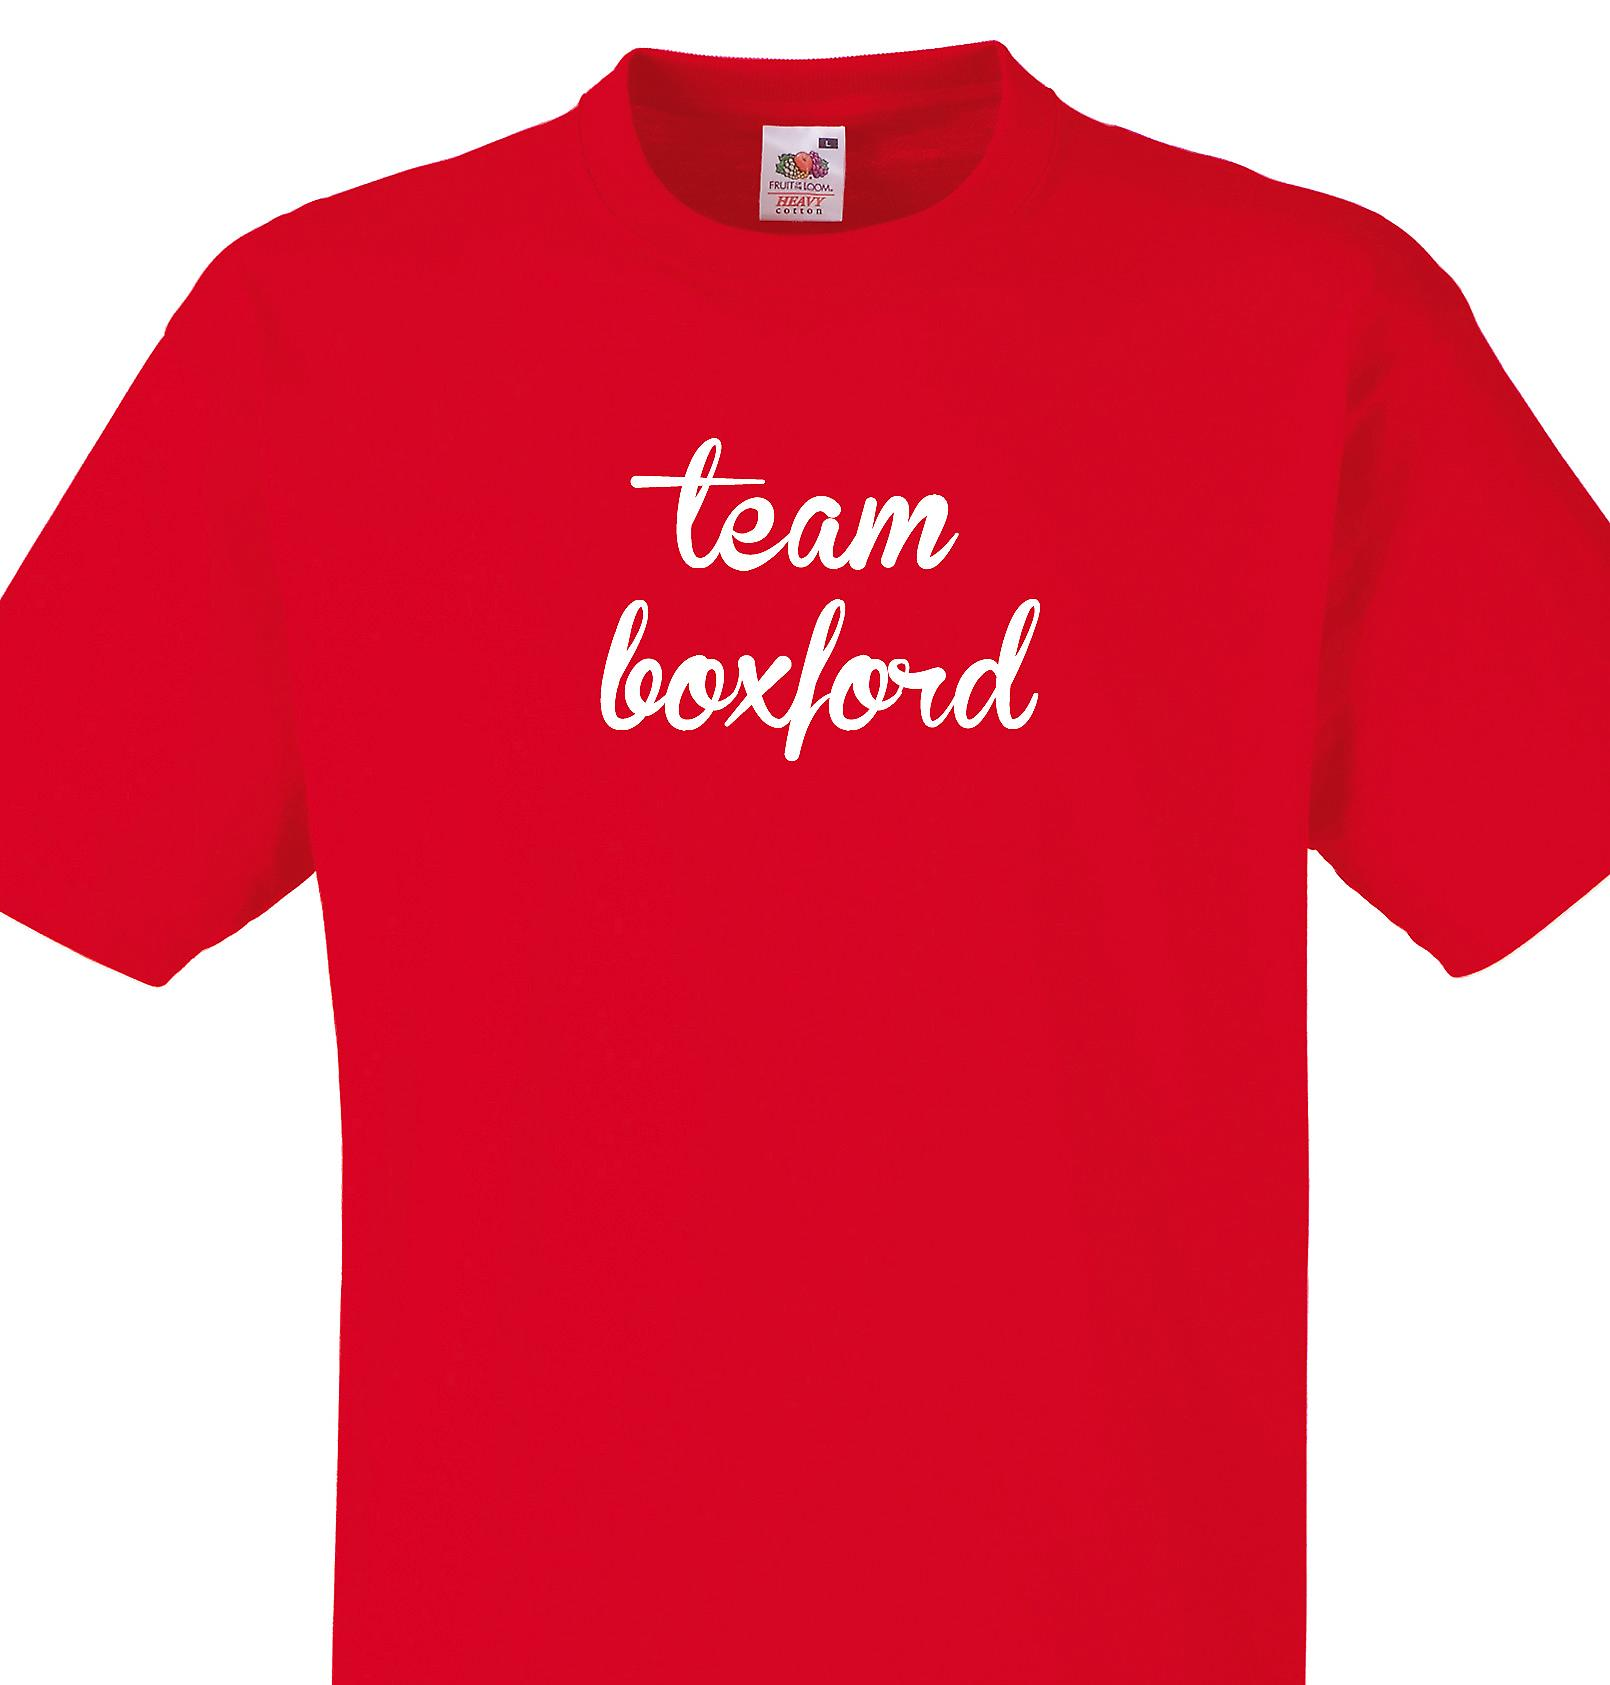 Team Boxford Red T shirt